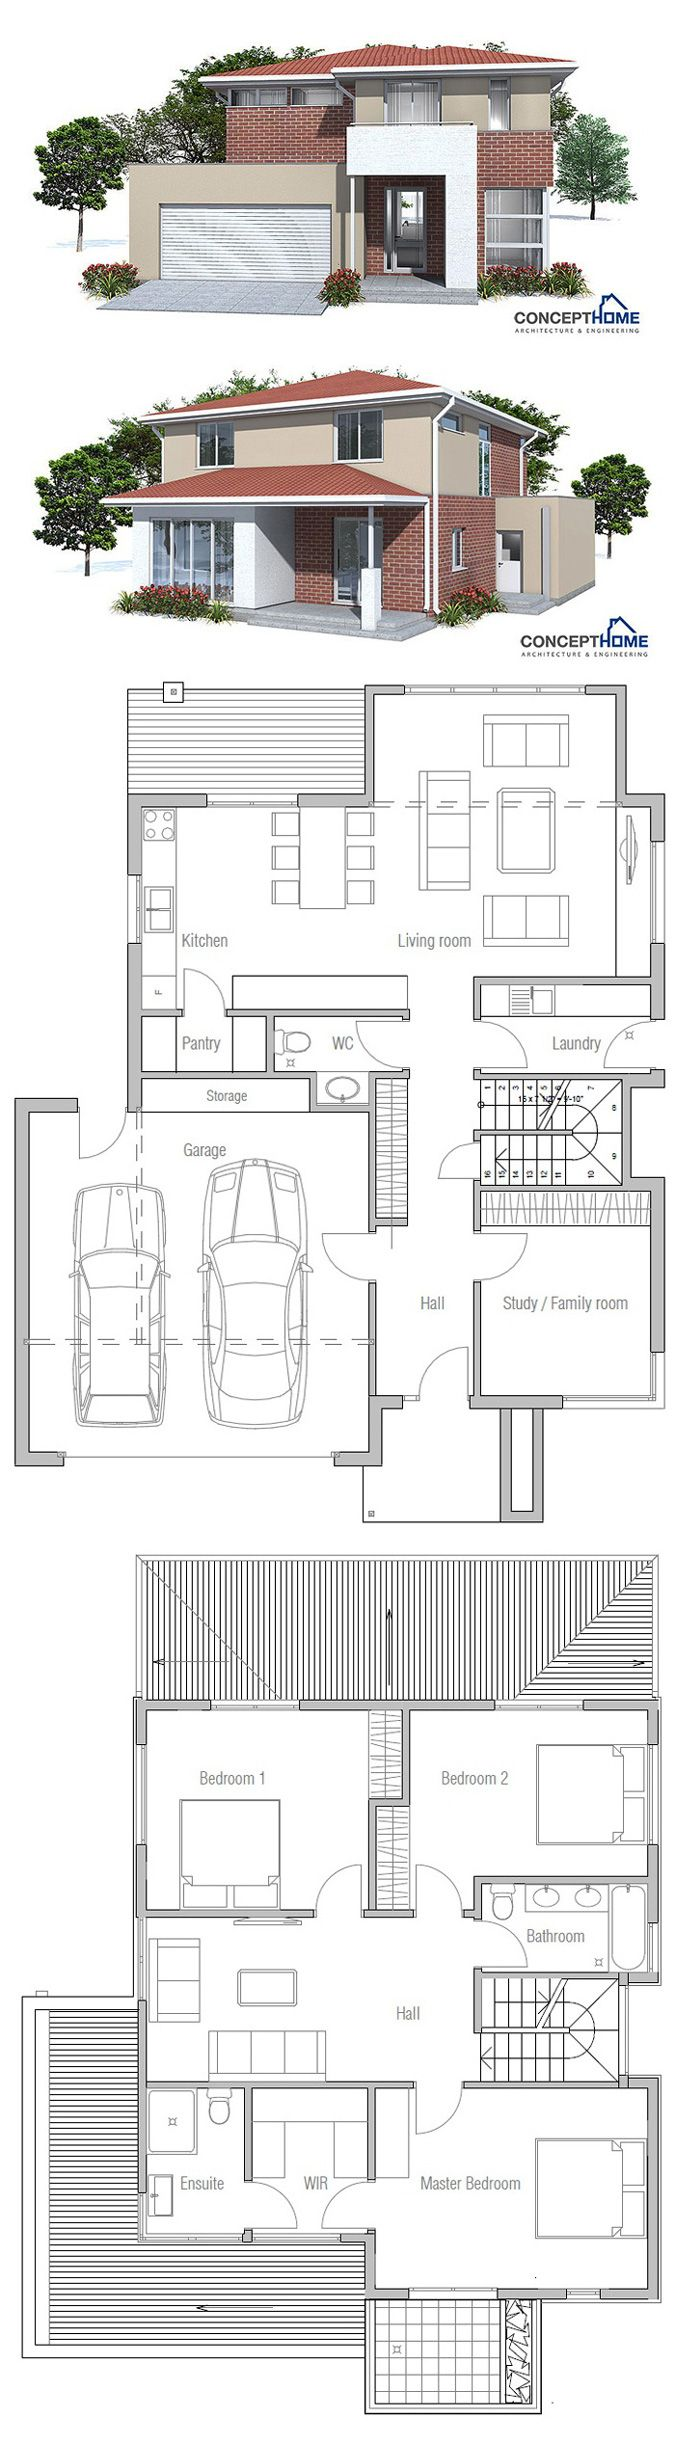 Nice floor plan move garage on right side and it   perfect for me also rh pinterest